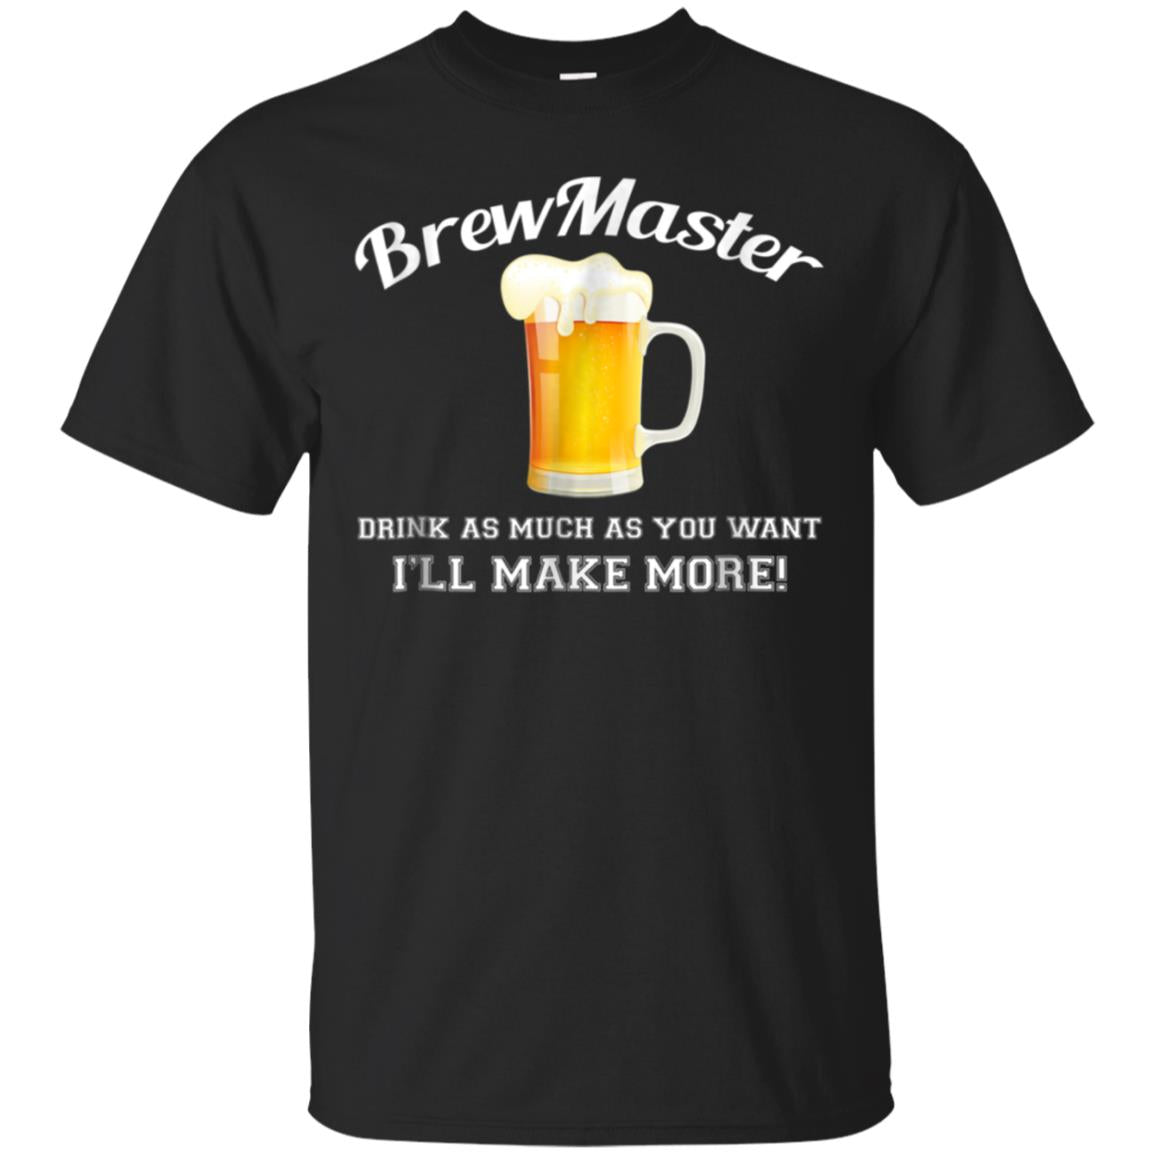 Men s Brew Master Beer drink as much as you want T Shirt 99promocode